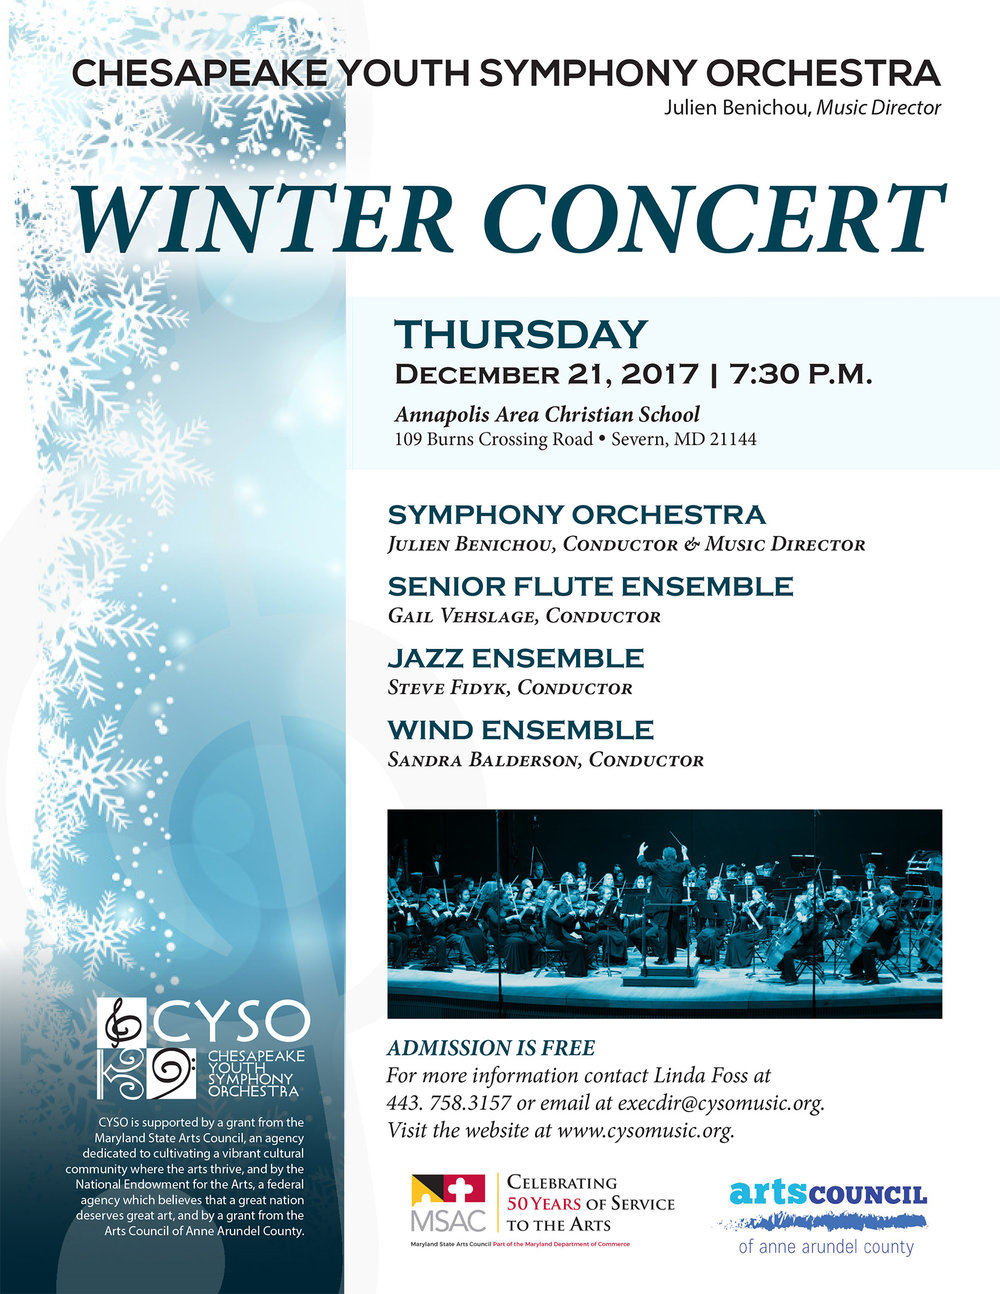 CYSO-Winter-Concert-Flyer_update.jpg